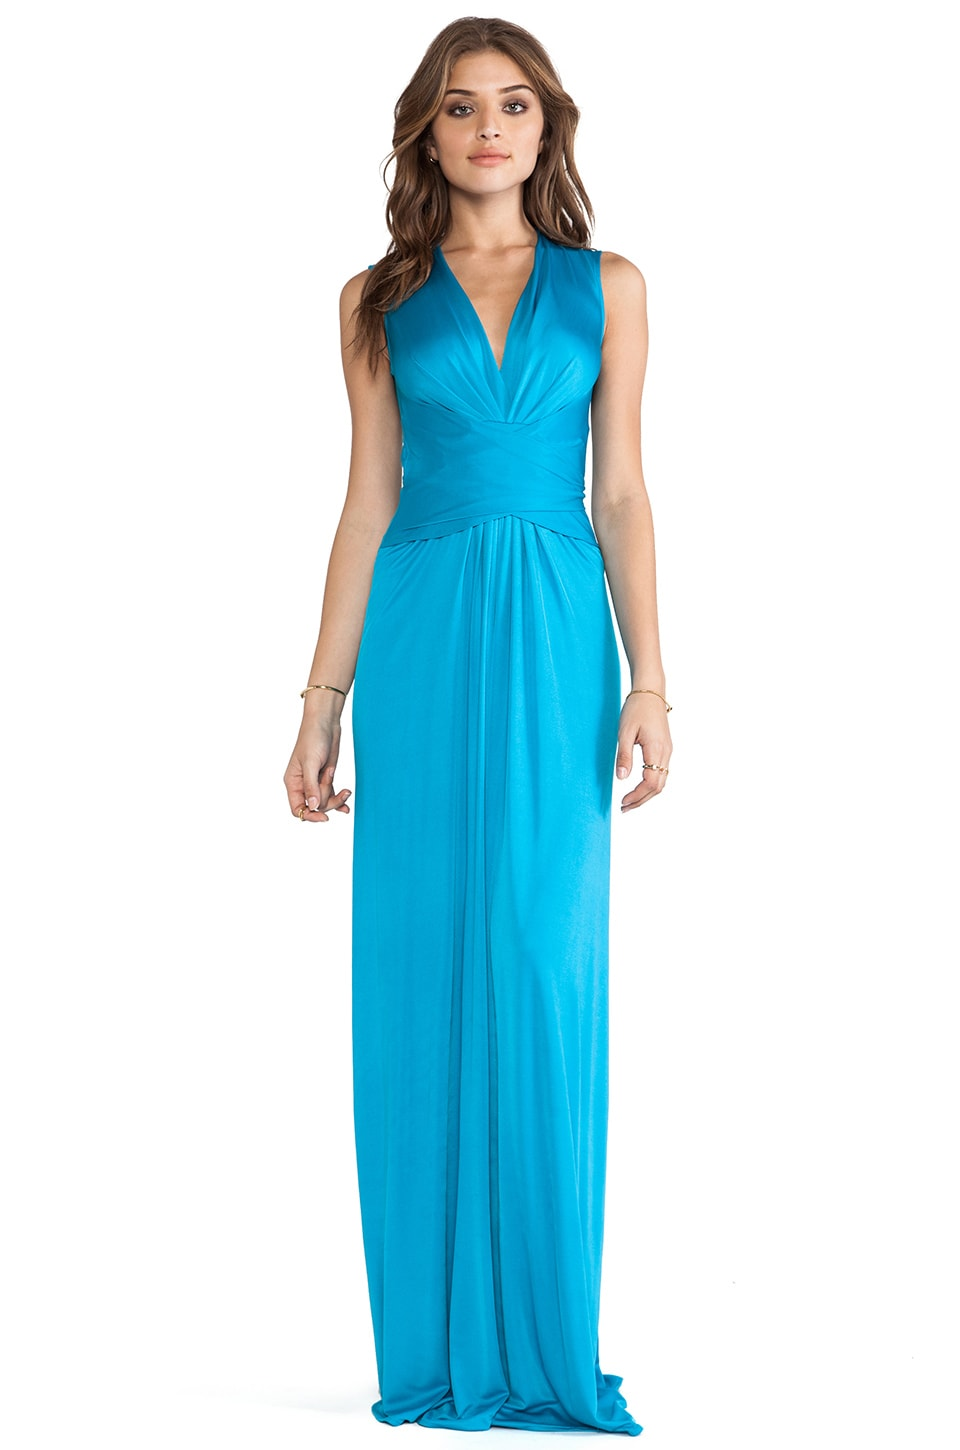 Issa Sleeveless Wrap Maxi Dress in Lapis